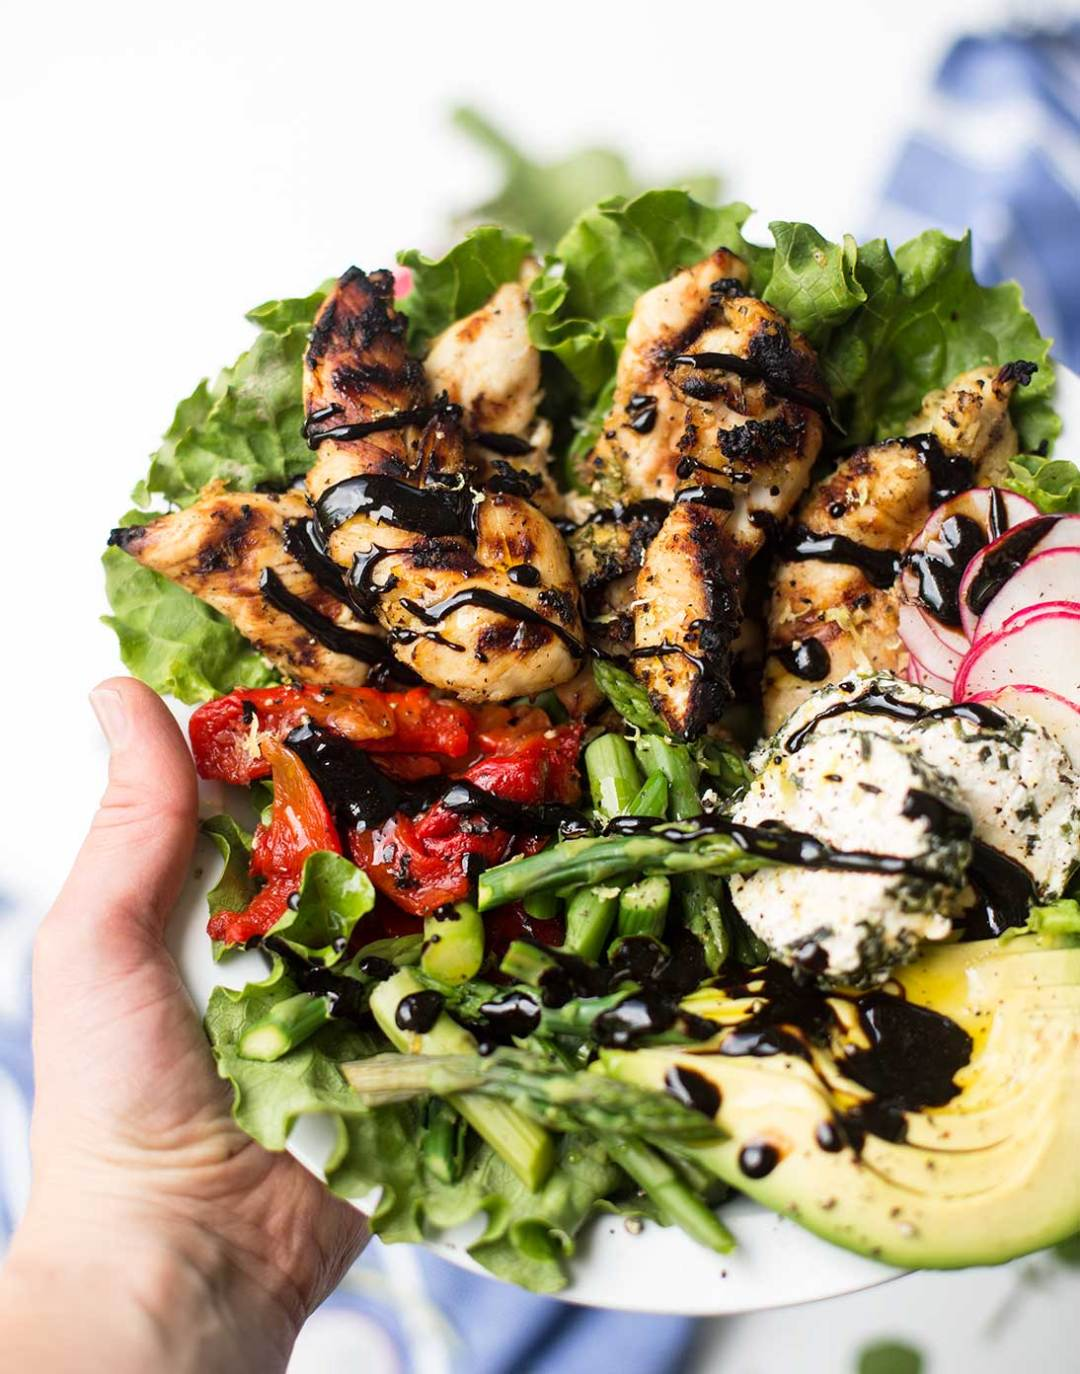 Lemon Chicken Spring Salad: Grilled lemon and garlic-marinated chicken on a bed of leafy greens, with spring radishes and asparagus, goat cheese, roasted peppers and avocado, drizzled with a sweet balsamic glaze.